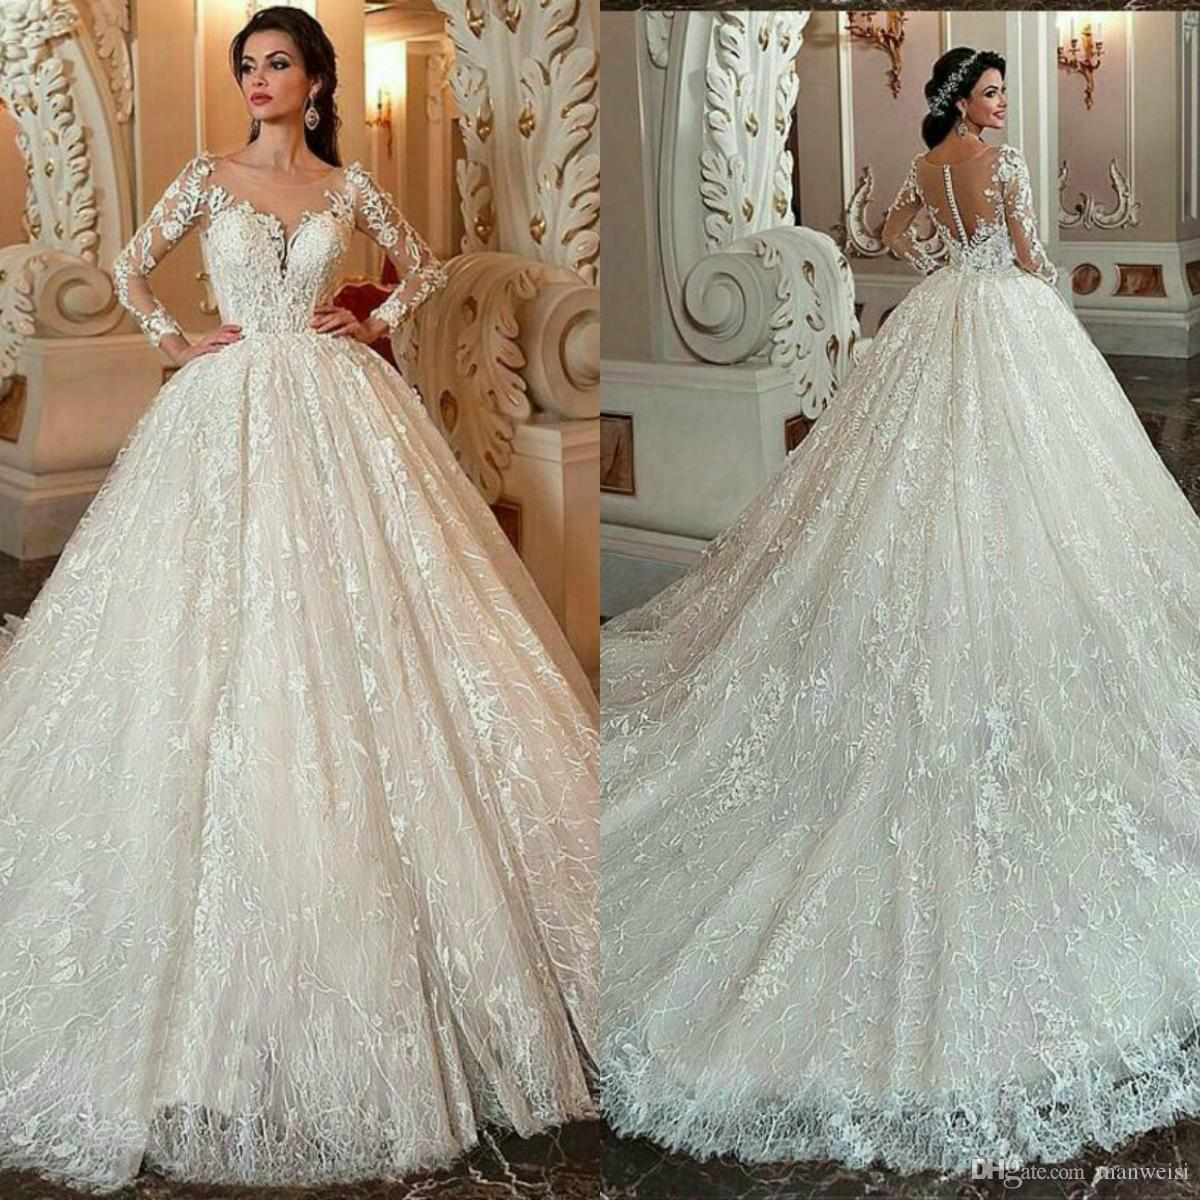 2651c44a4 Modest Lace Ball Gown Wedding Dresses 2019 New Illusion Jewel Neck Long  Sleeves Beads Arabic African Vestido De Novia Appliqued Bridal Gowns Gold  Wedding ...